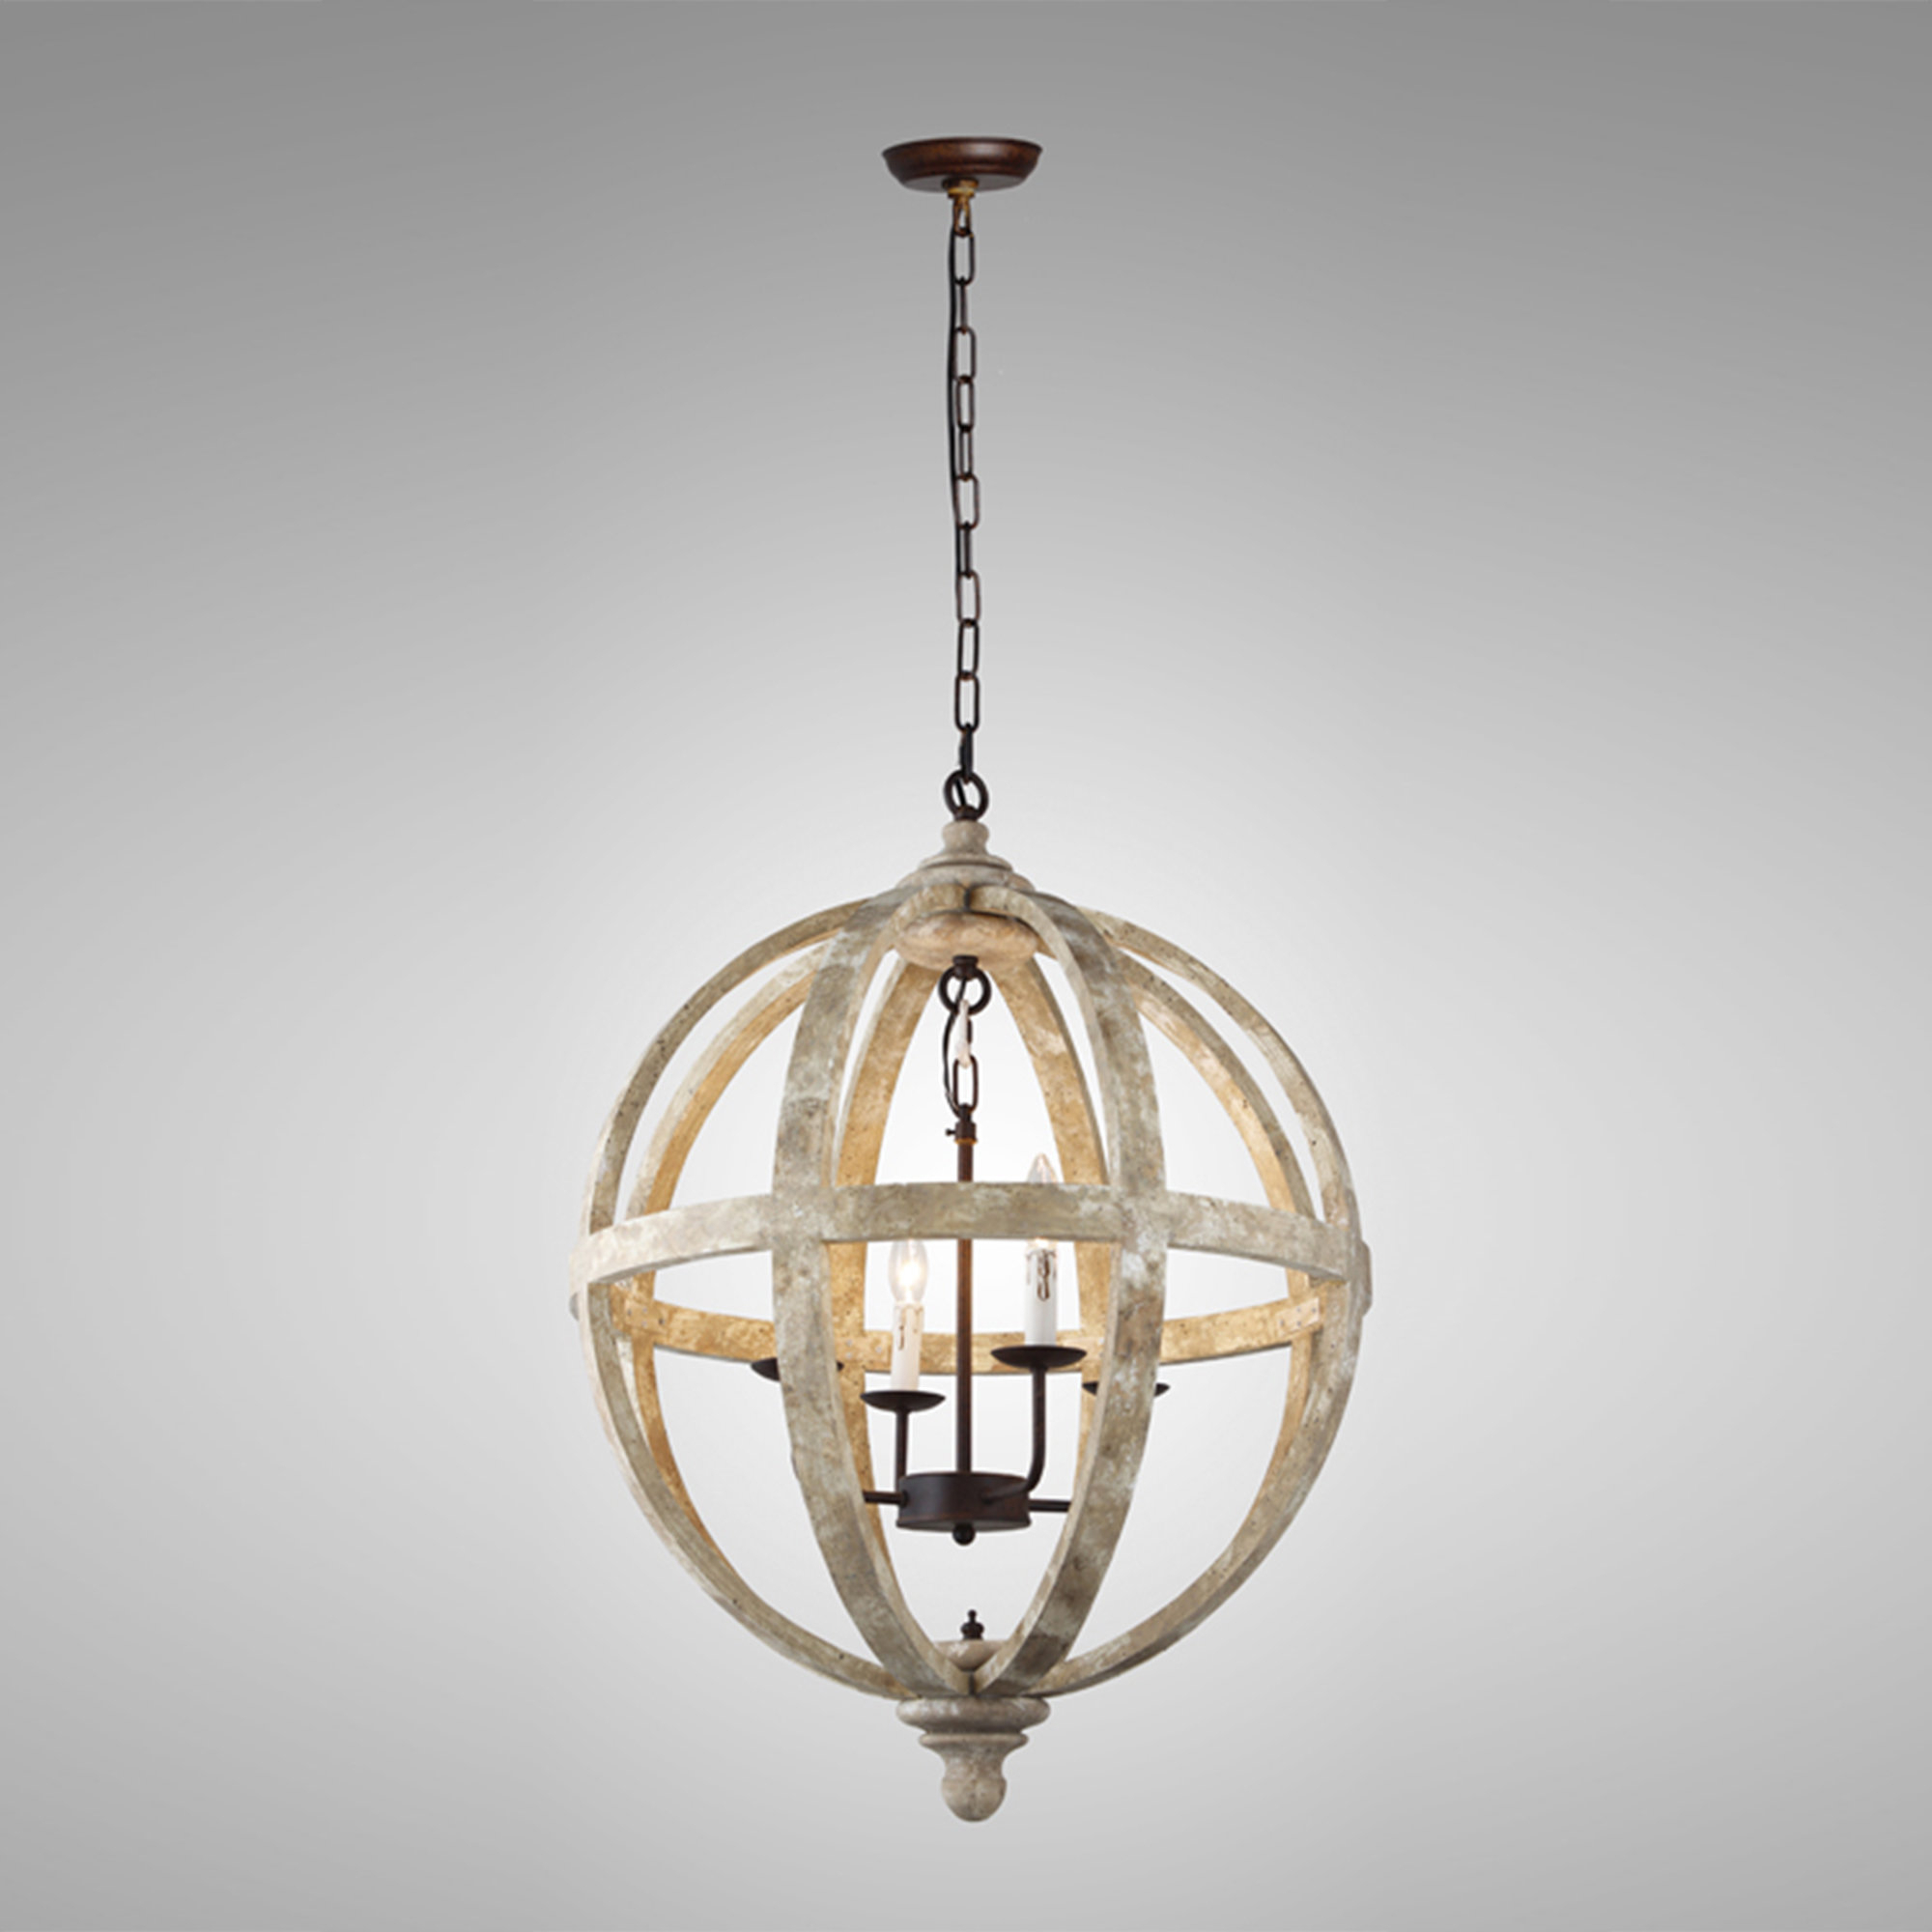 Ryne 4 Light Globe Chandelier Intended For Cavanagh 4 Light Geometric Chandeliers (Gallery 15 of 30)